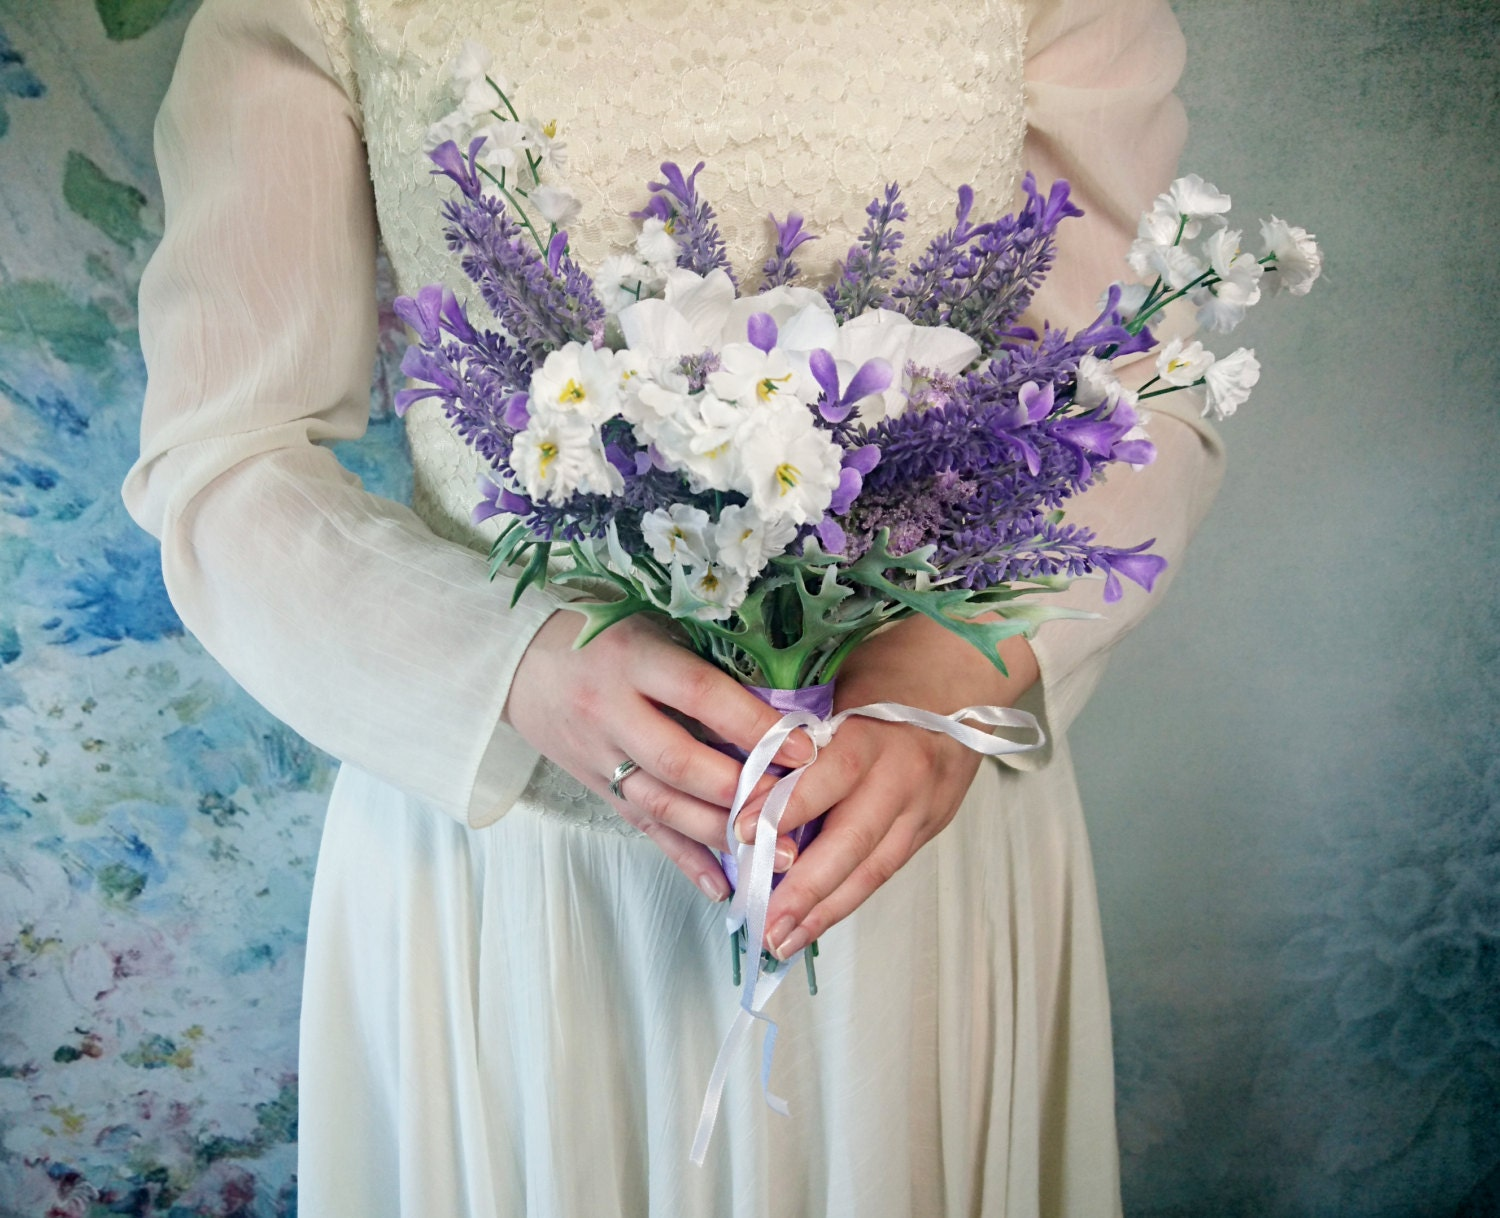 Ready to ship lavender white wedding bouquet fake flowers magnolia ready to ship lavender white wedding bouquet fake flowers magnolia matthiola purple lilac satin ribbon custom bouquet small purple izmirmasajfo Image collections